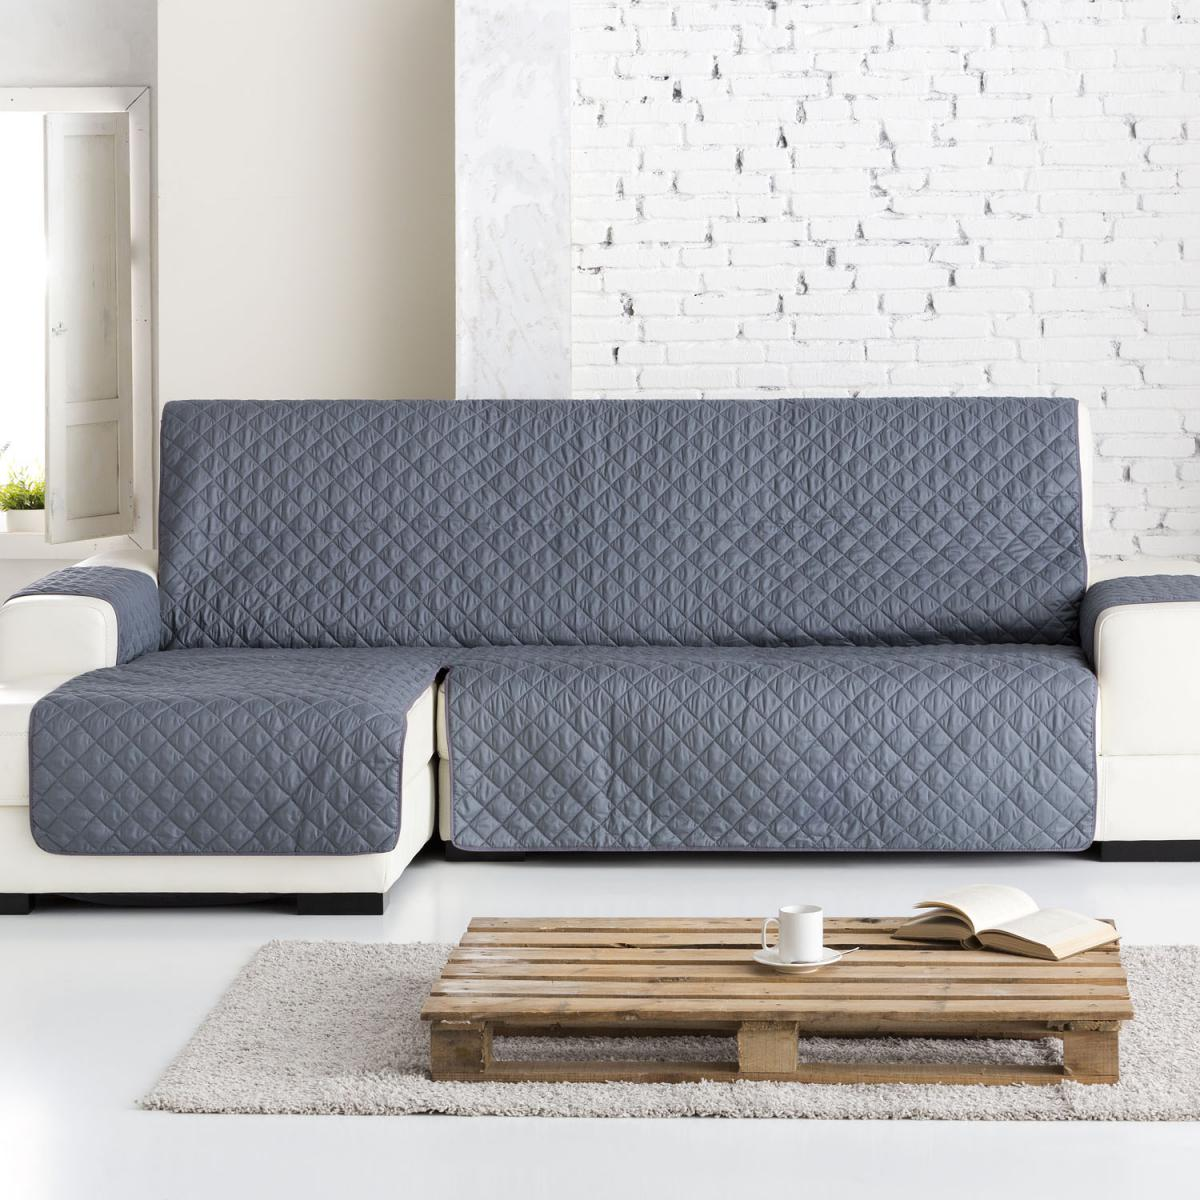 Funda sof chaise longue dual quilt eysa - Fundas de sofa con chaise longue ...